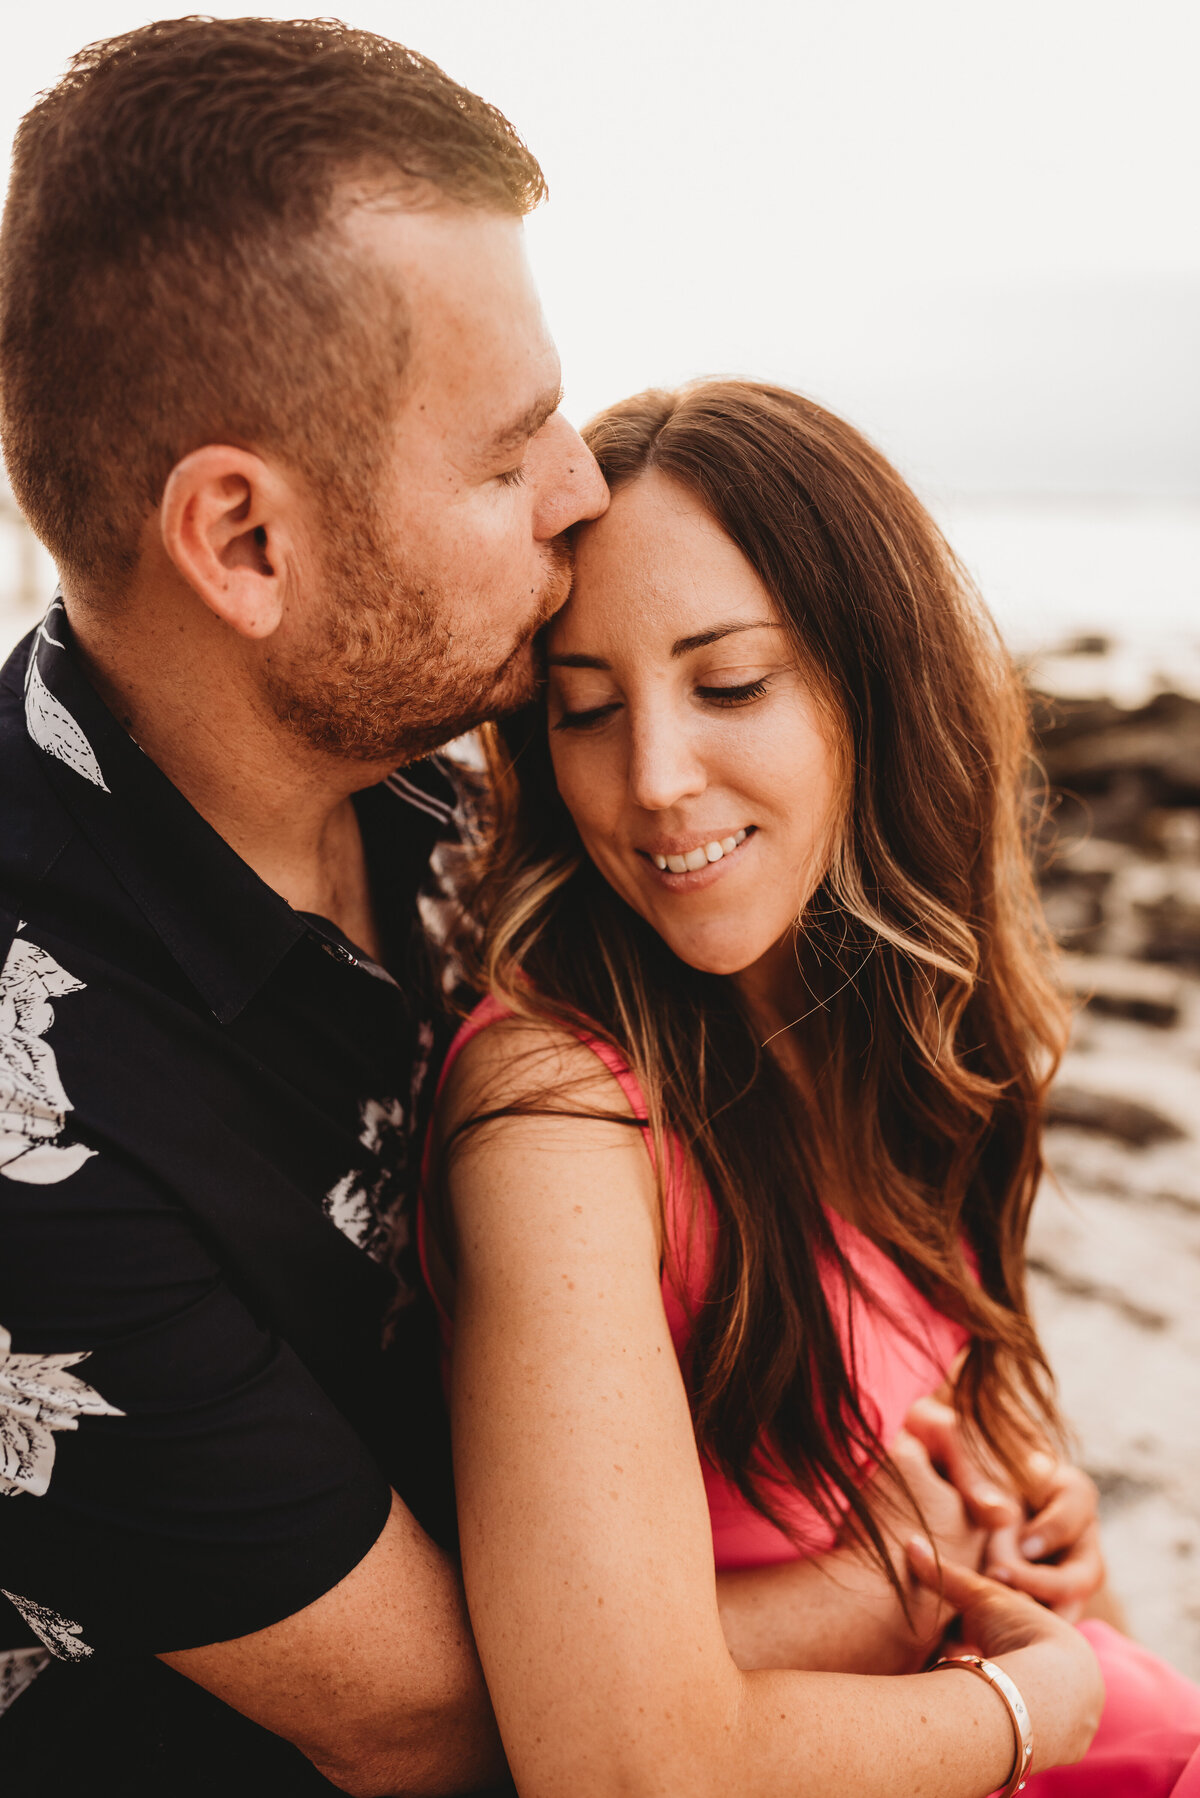 Tampa couple engagement session